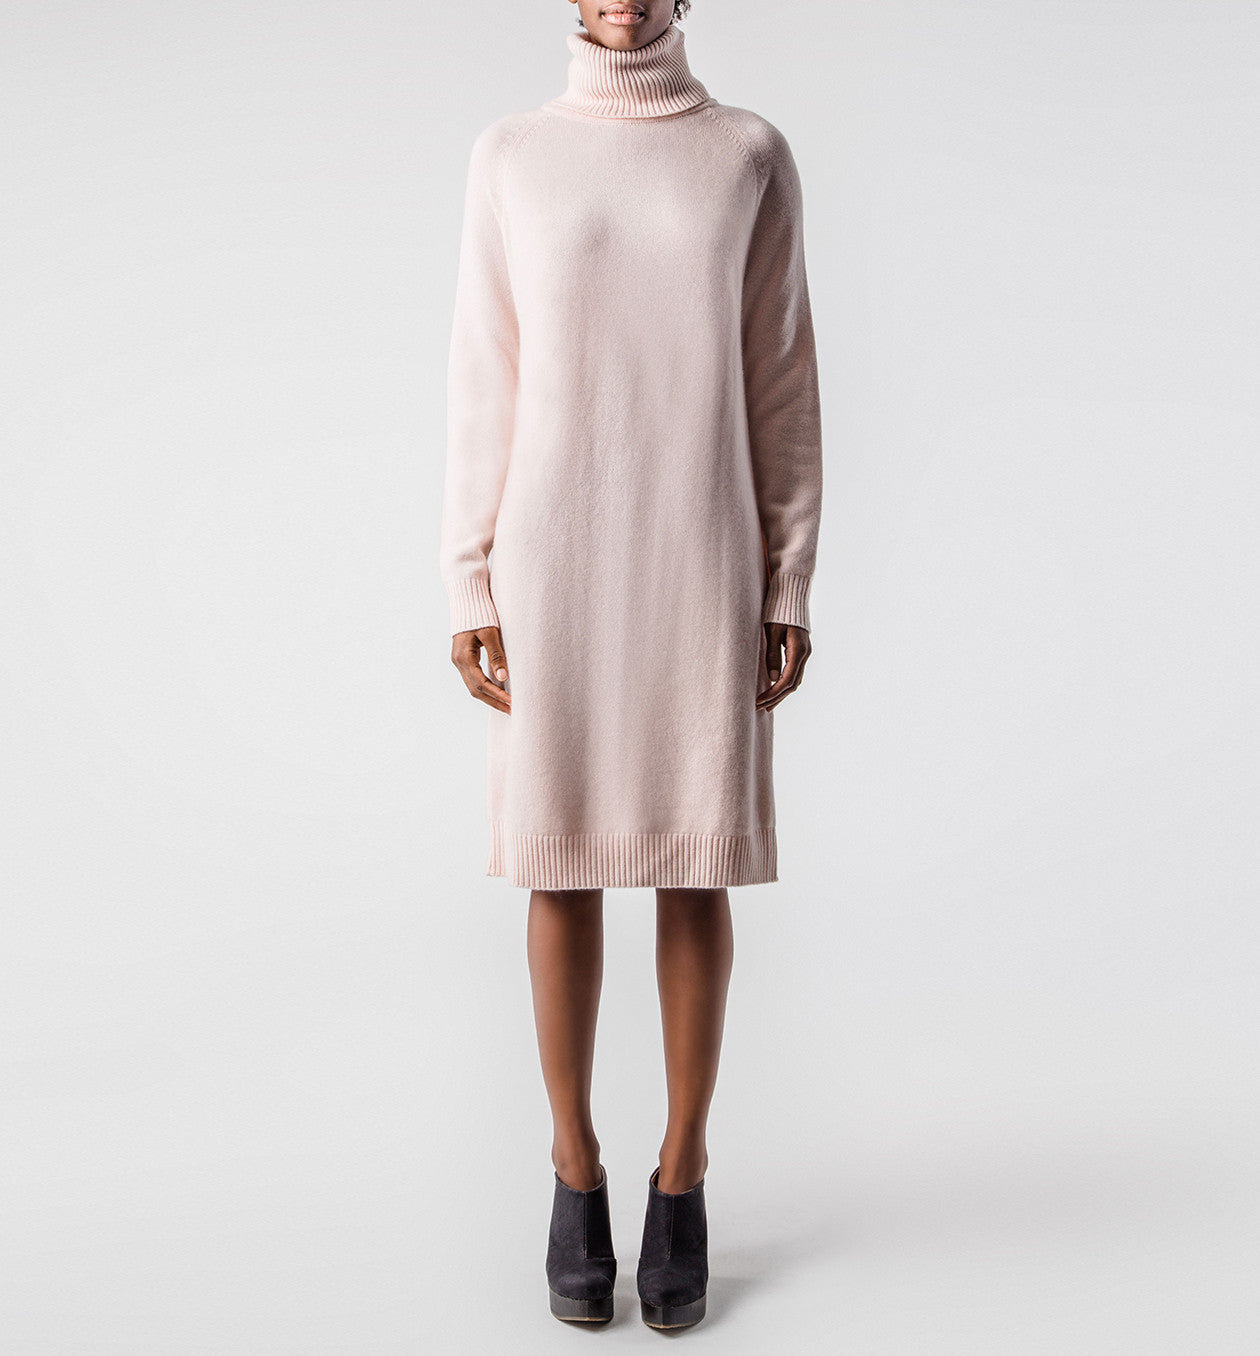 Turtleneck Dress Apricot